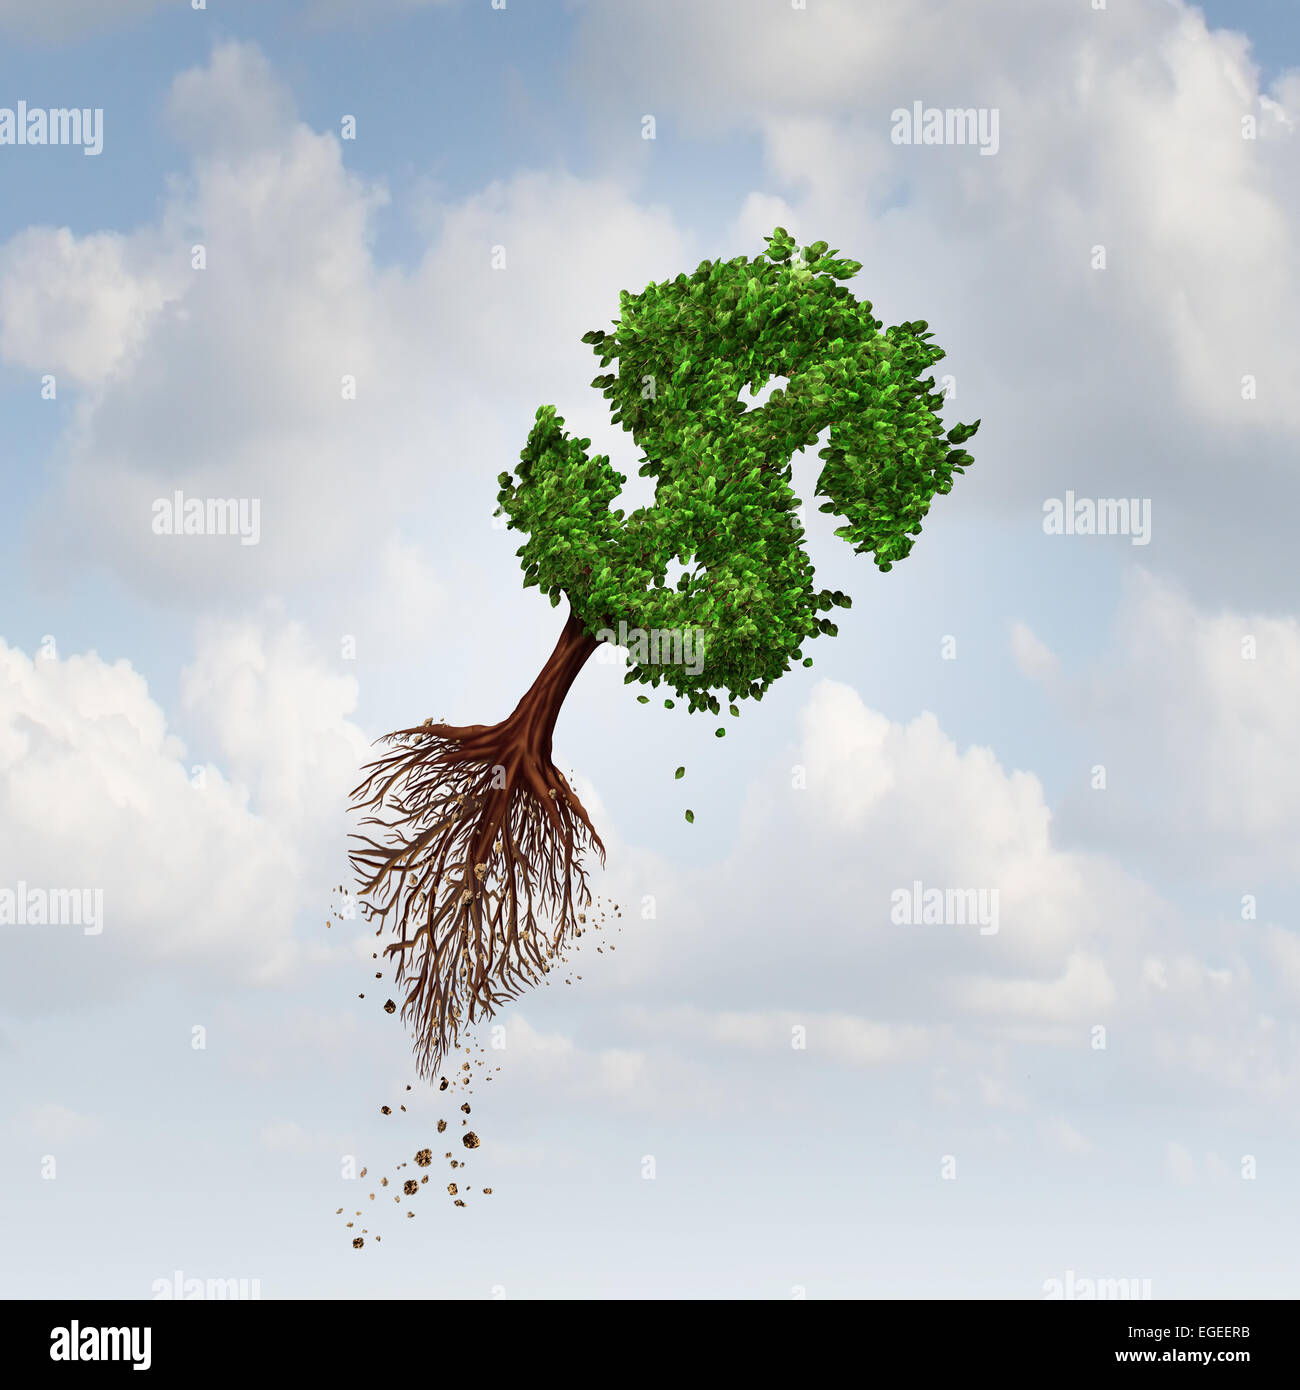 Money Flight business concept as a flying tree with uprooted roots shaped as a dollar sign as a symbol for financial - Stock Image